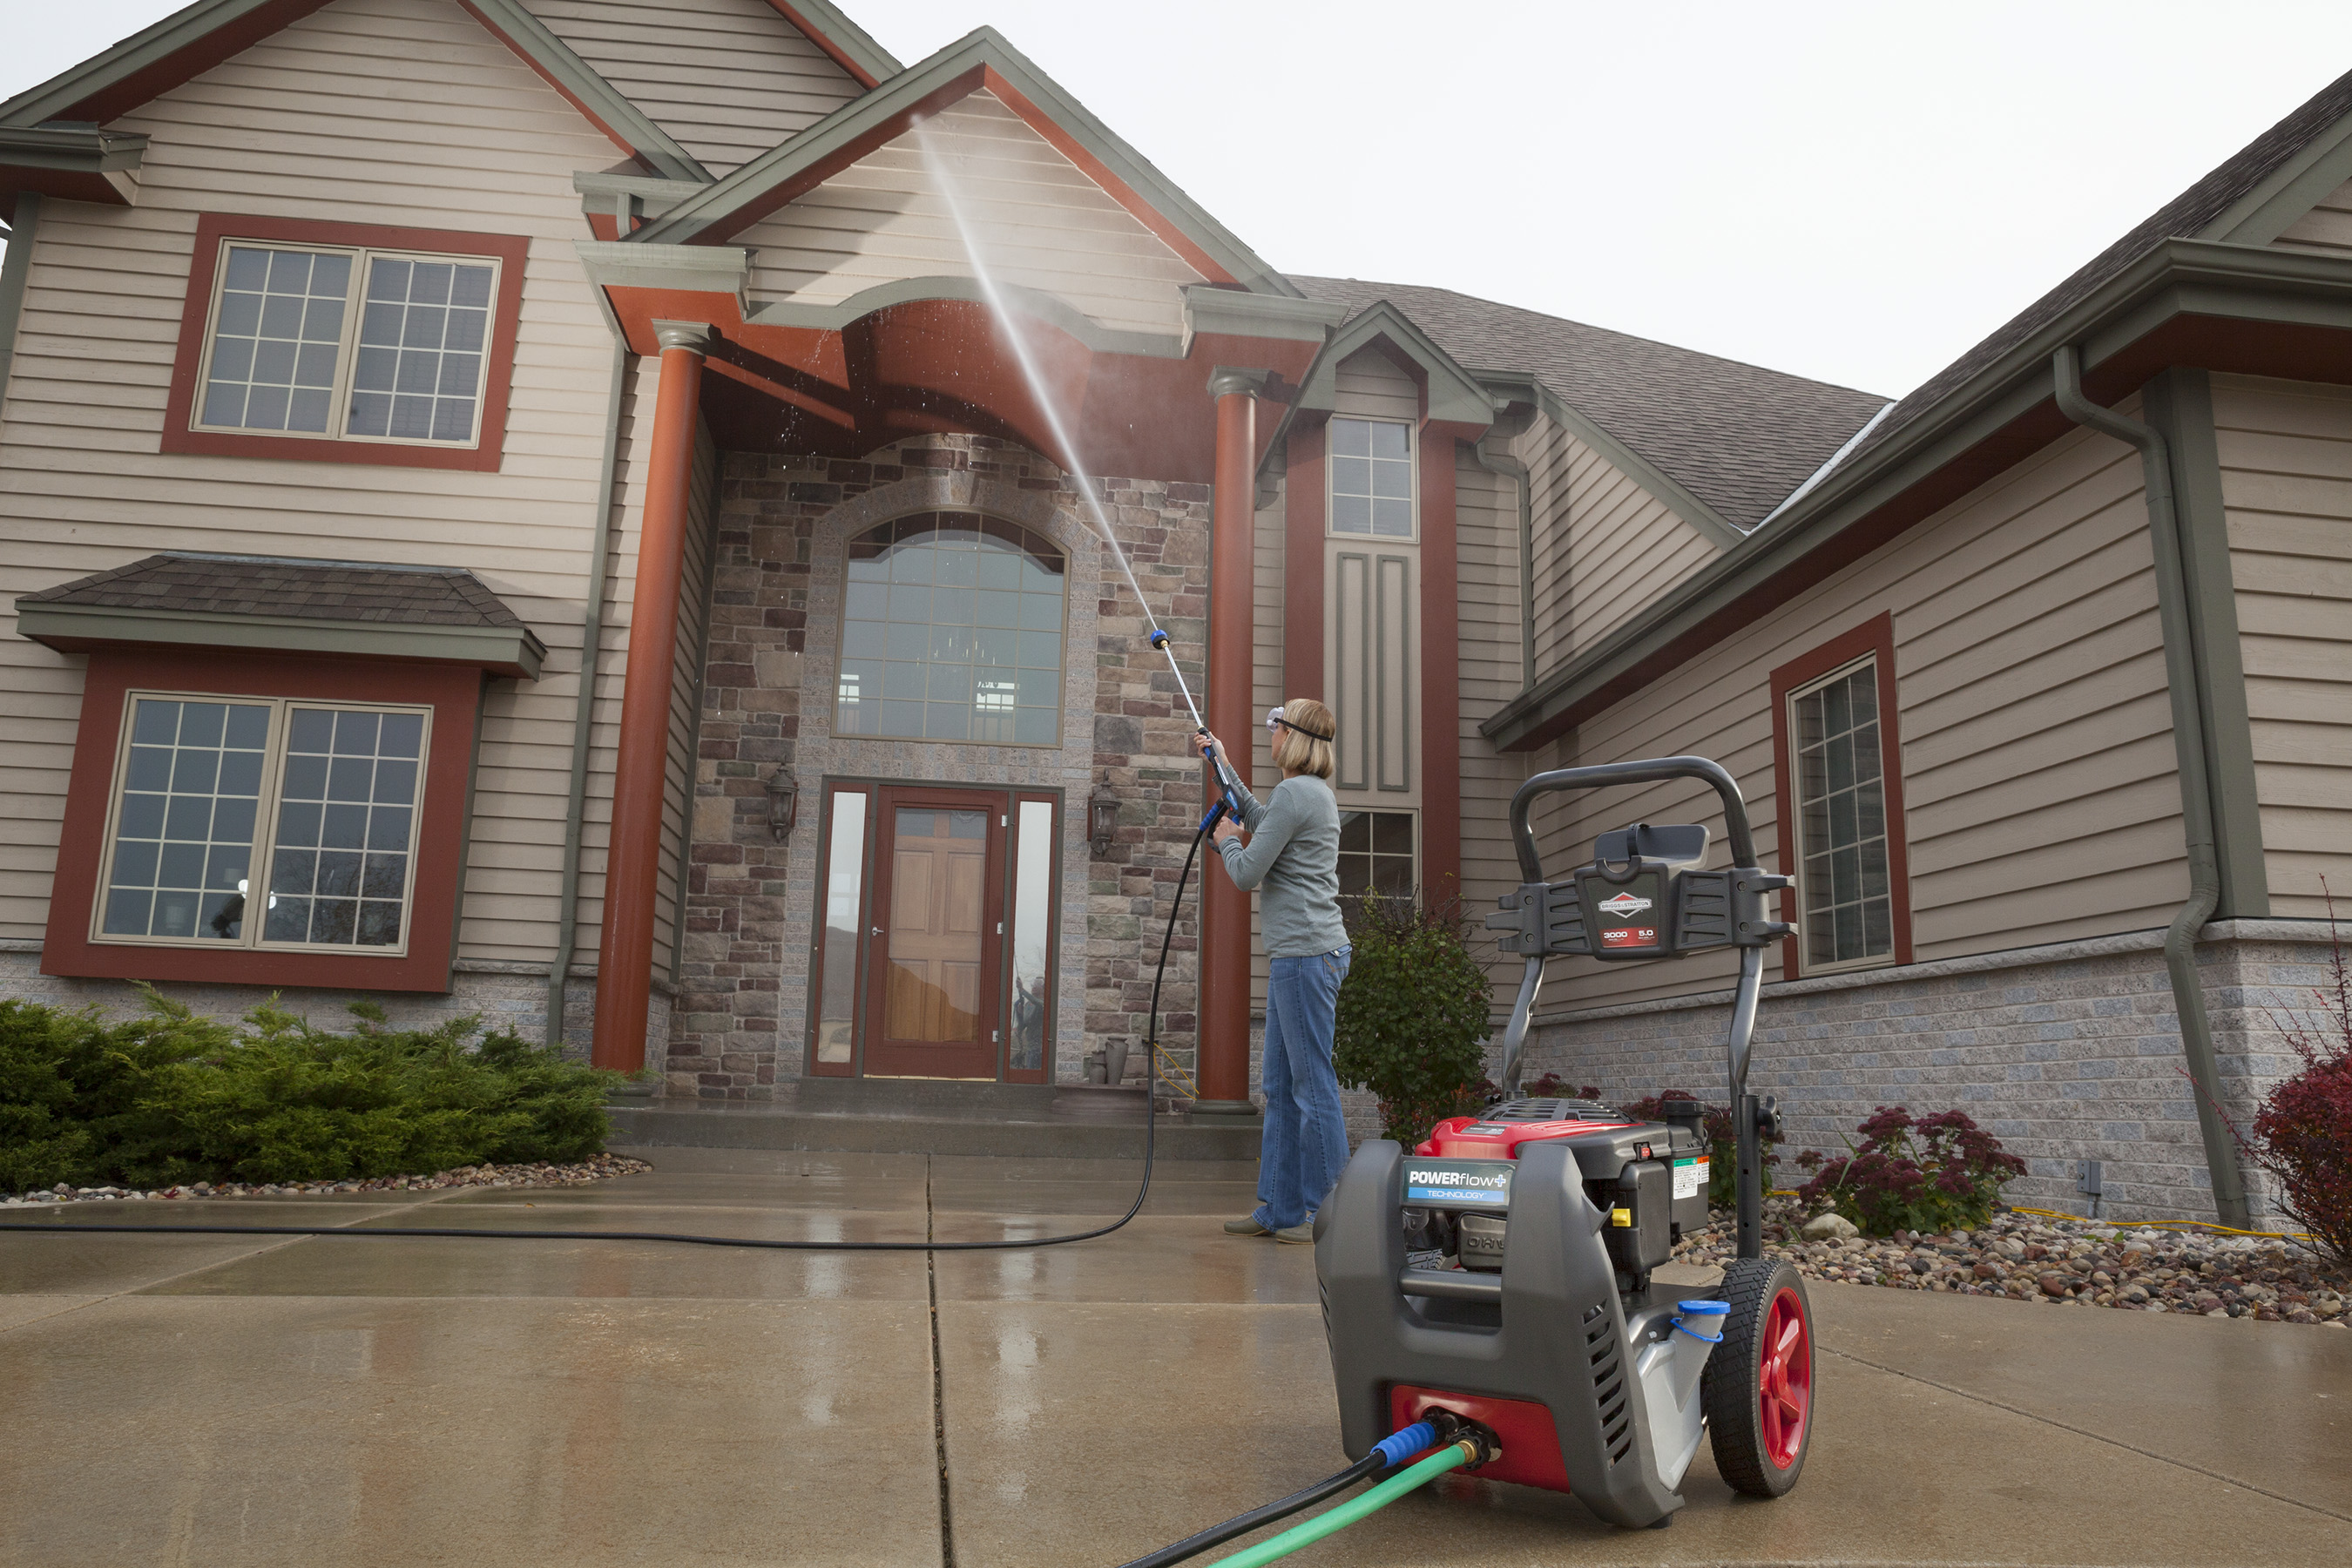 Power washing your second story windows and house siding has never been easier with the POWERflow+ gas pressure washer.The 7-in-1 nozzle allows you to change settings with a twist of the wrist.